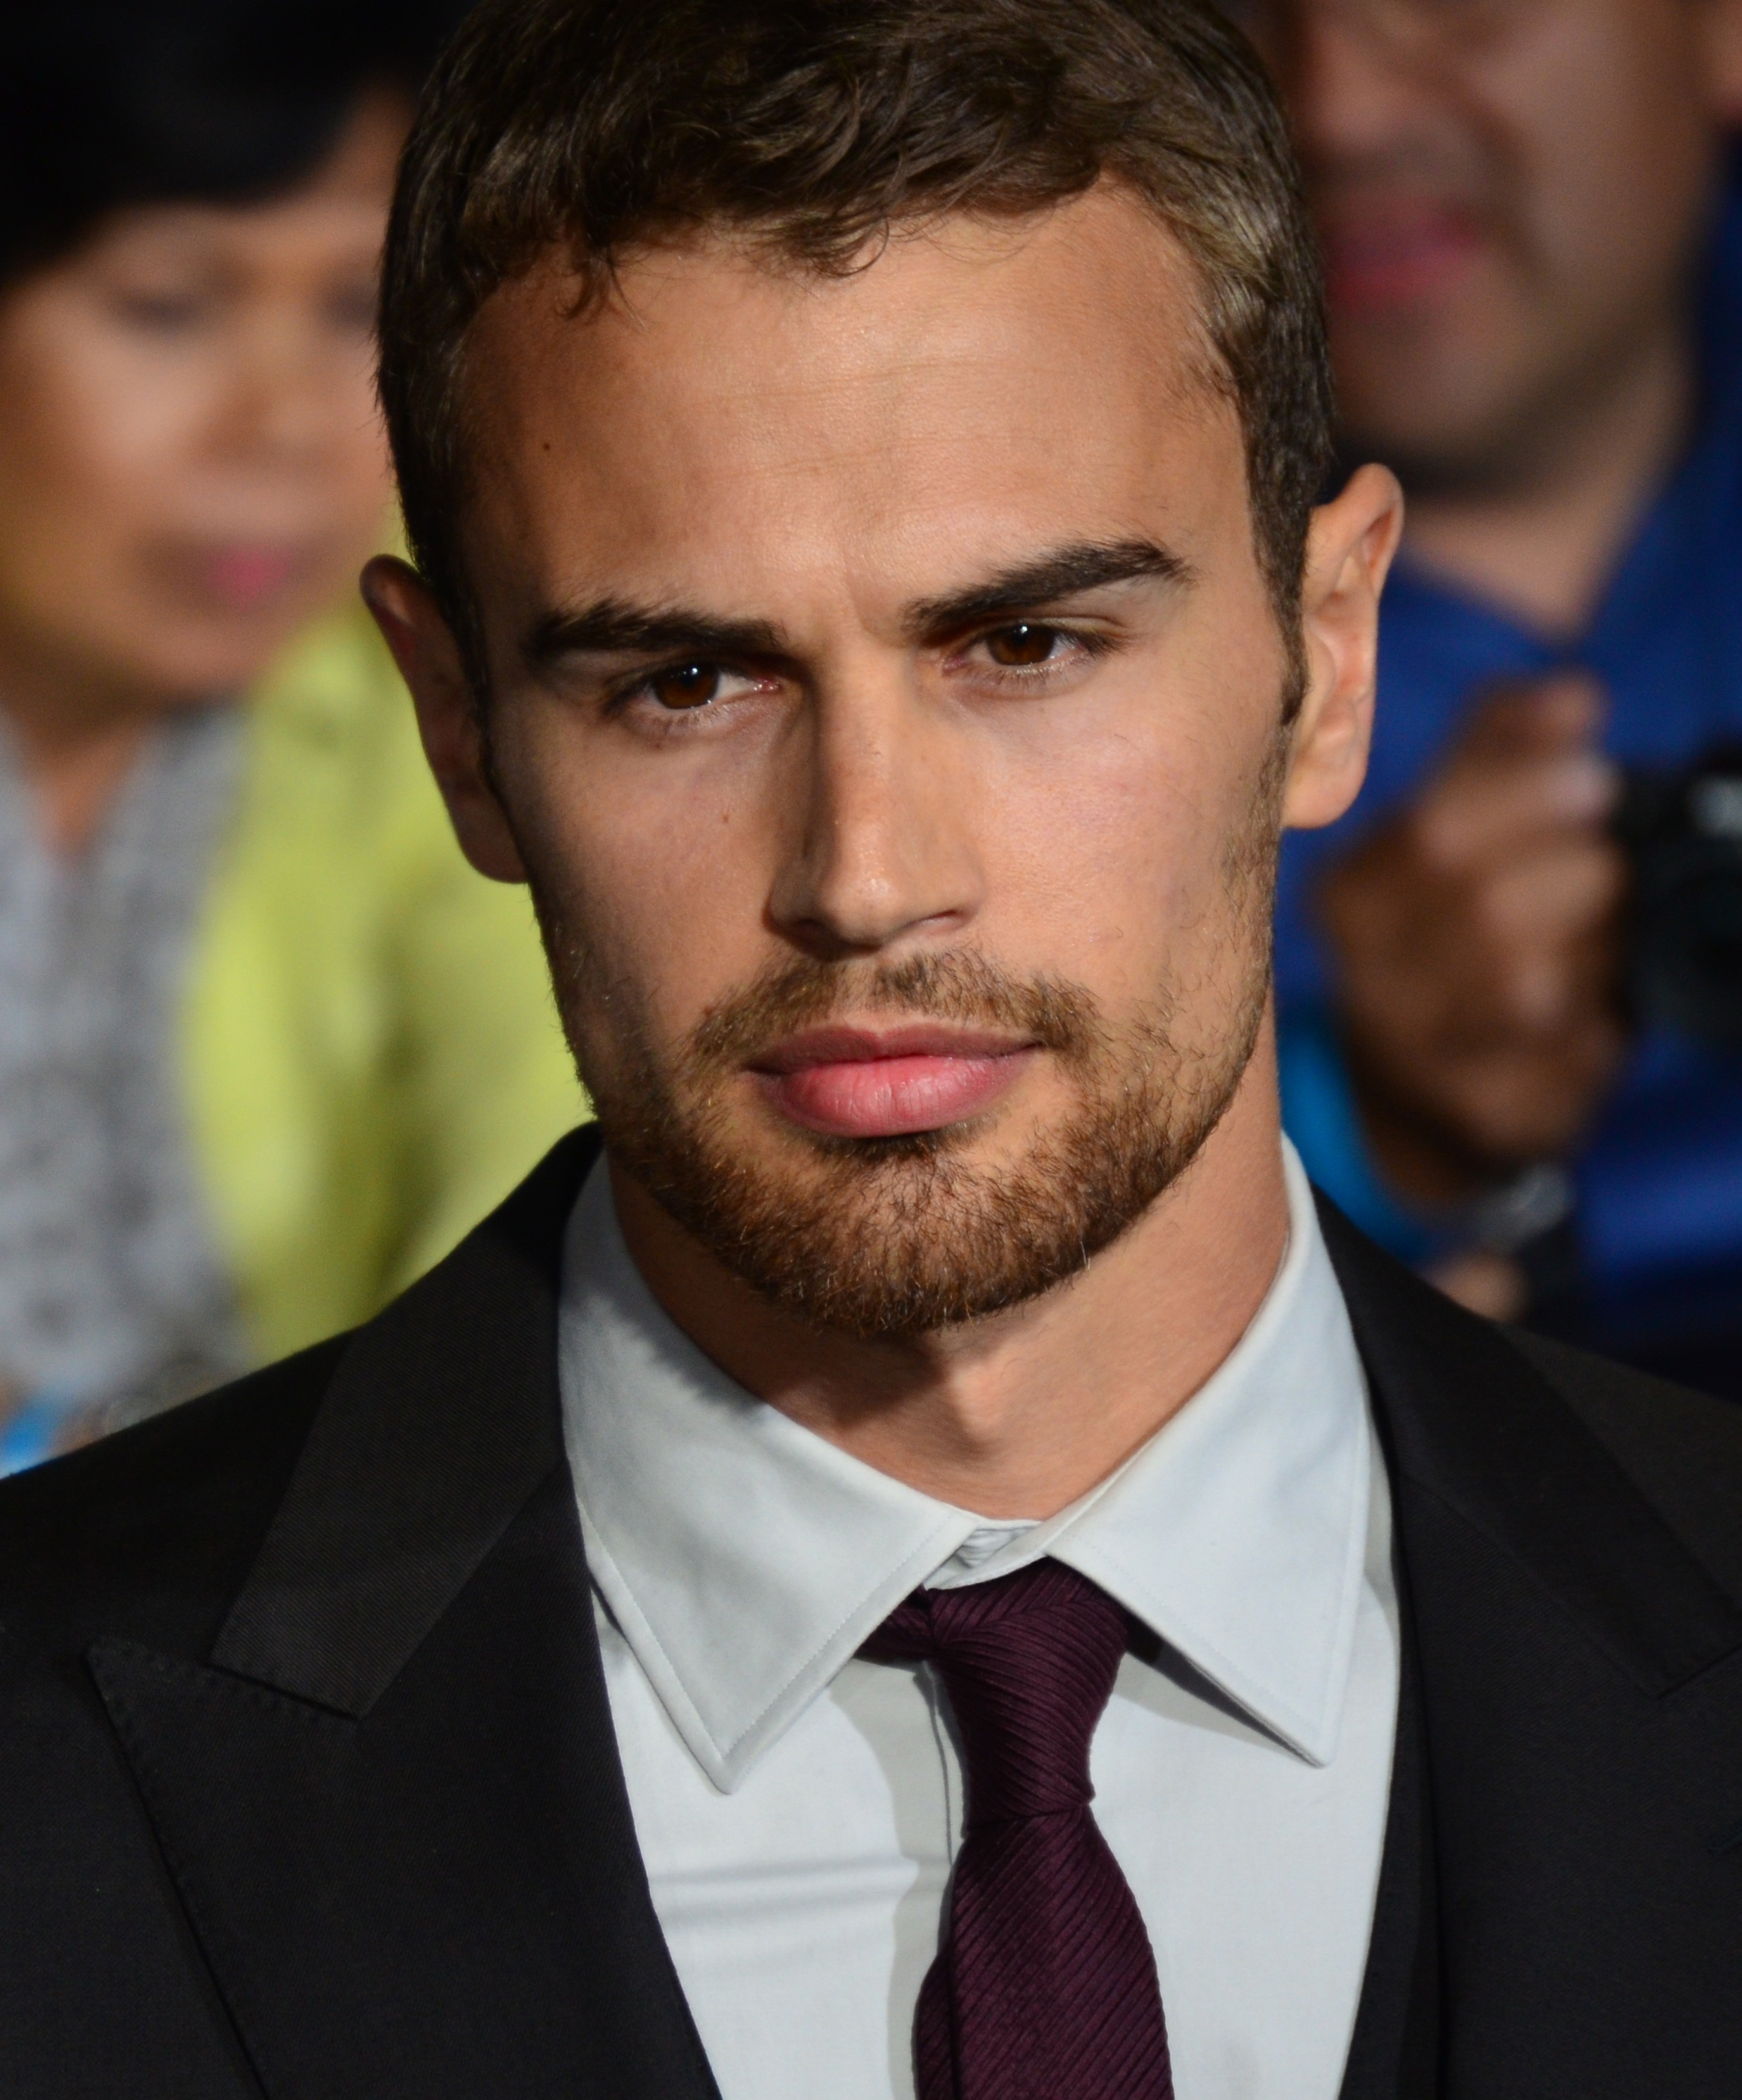 Theo James Girlfriend 2014 Theo james march 18, 2014